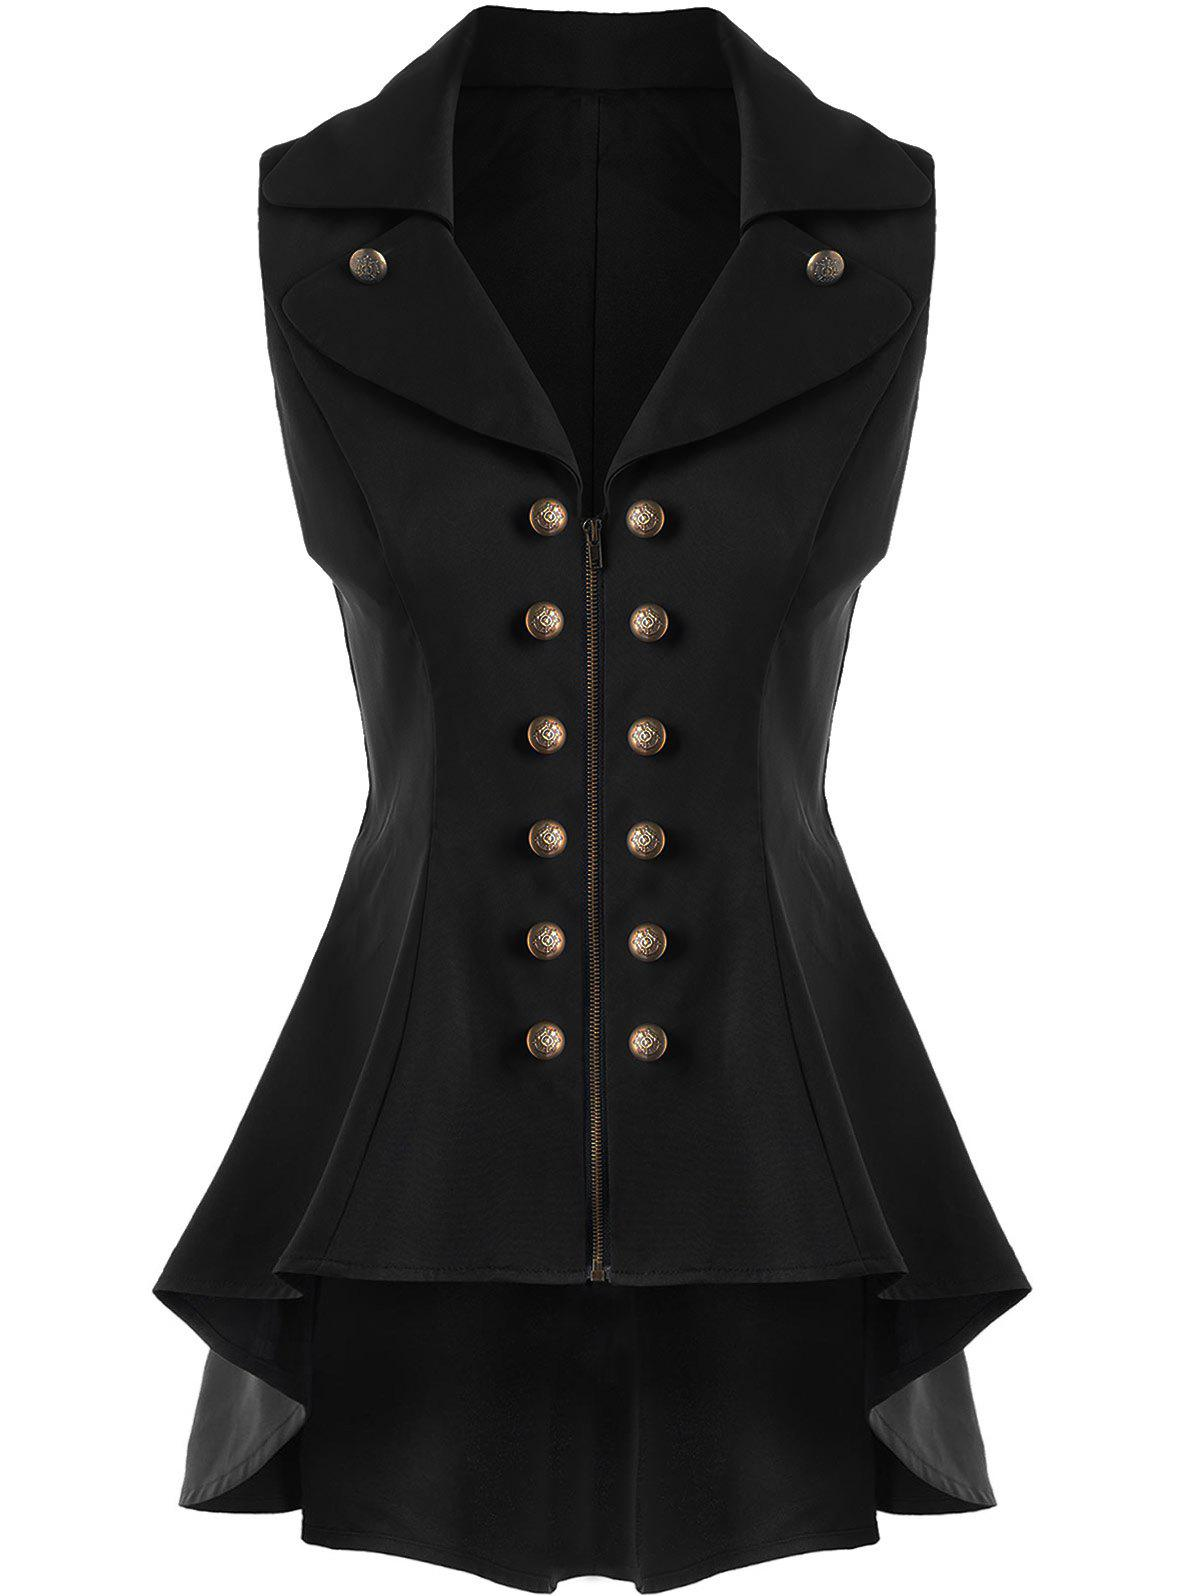 Double Breast High Low Lapel Dressy WaistcoatWOMEN<br><br>Size: 2XL; Color: BLACK; Material: Cotton,Cotton Blends,Polyester; Shirt Length: Long; Collar: Lapel; Closure Type: Zipper; Pattern Type: Solid; Thickness: Standard; Style: Fashion; Season: Spring,Summer; Embellishment: Button; Weight: 0.5500kg; Package Contents: 1 x Waistcoat;